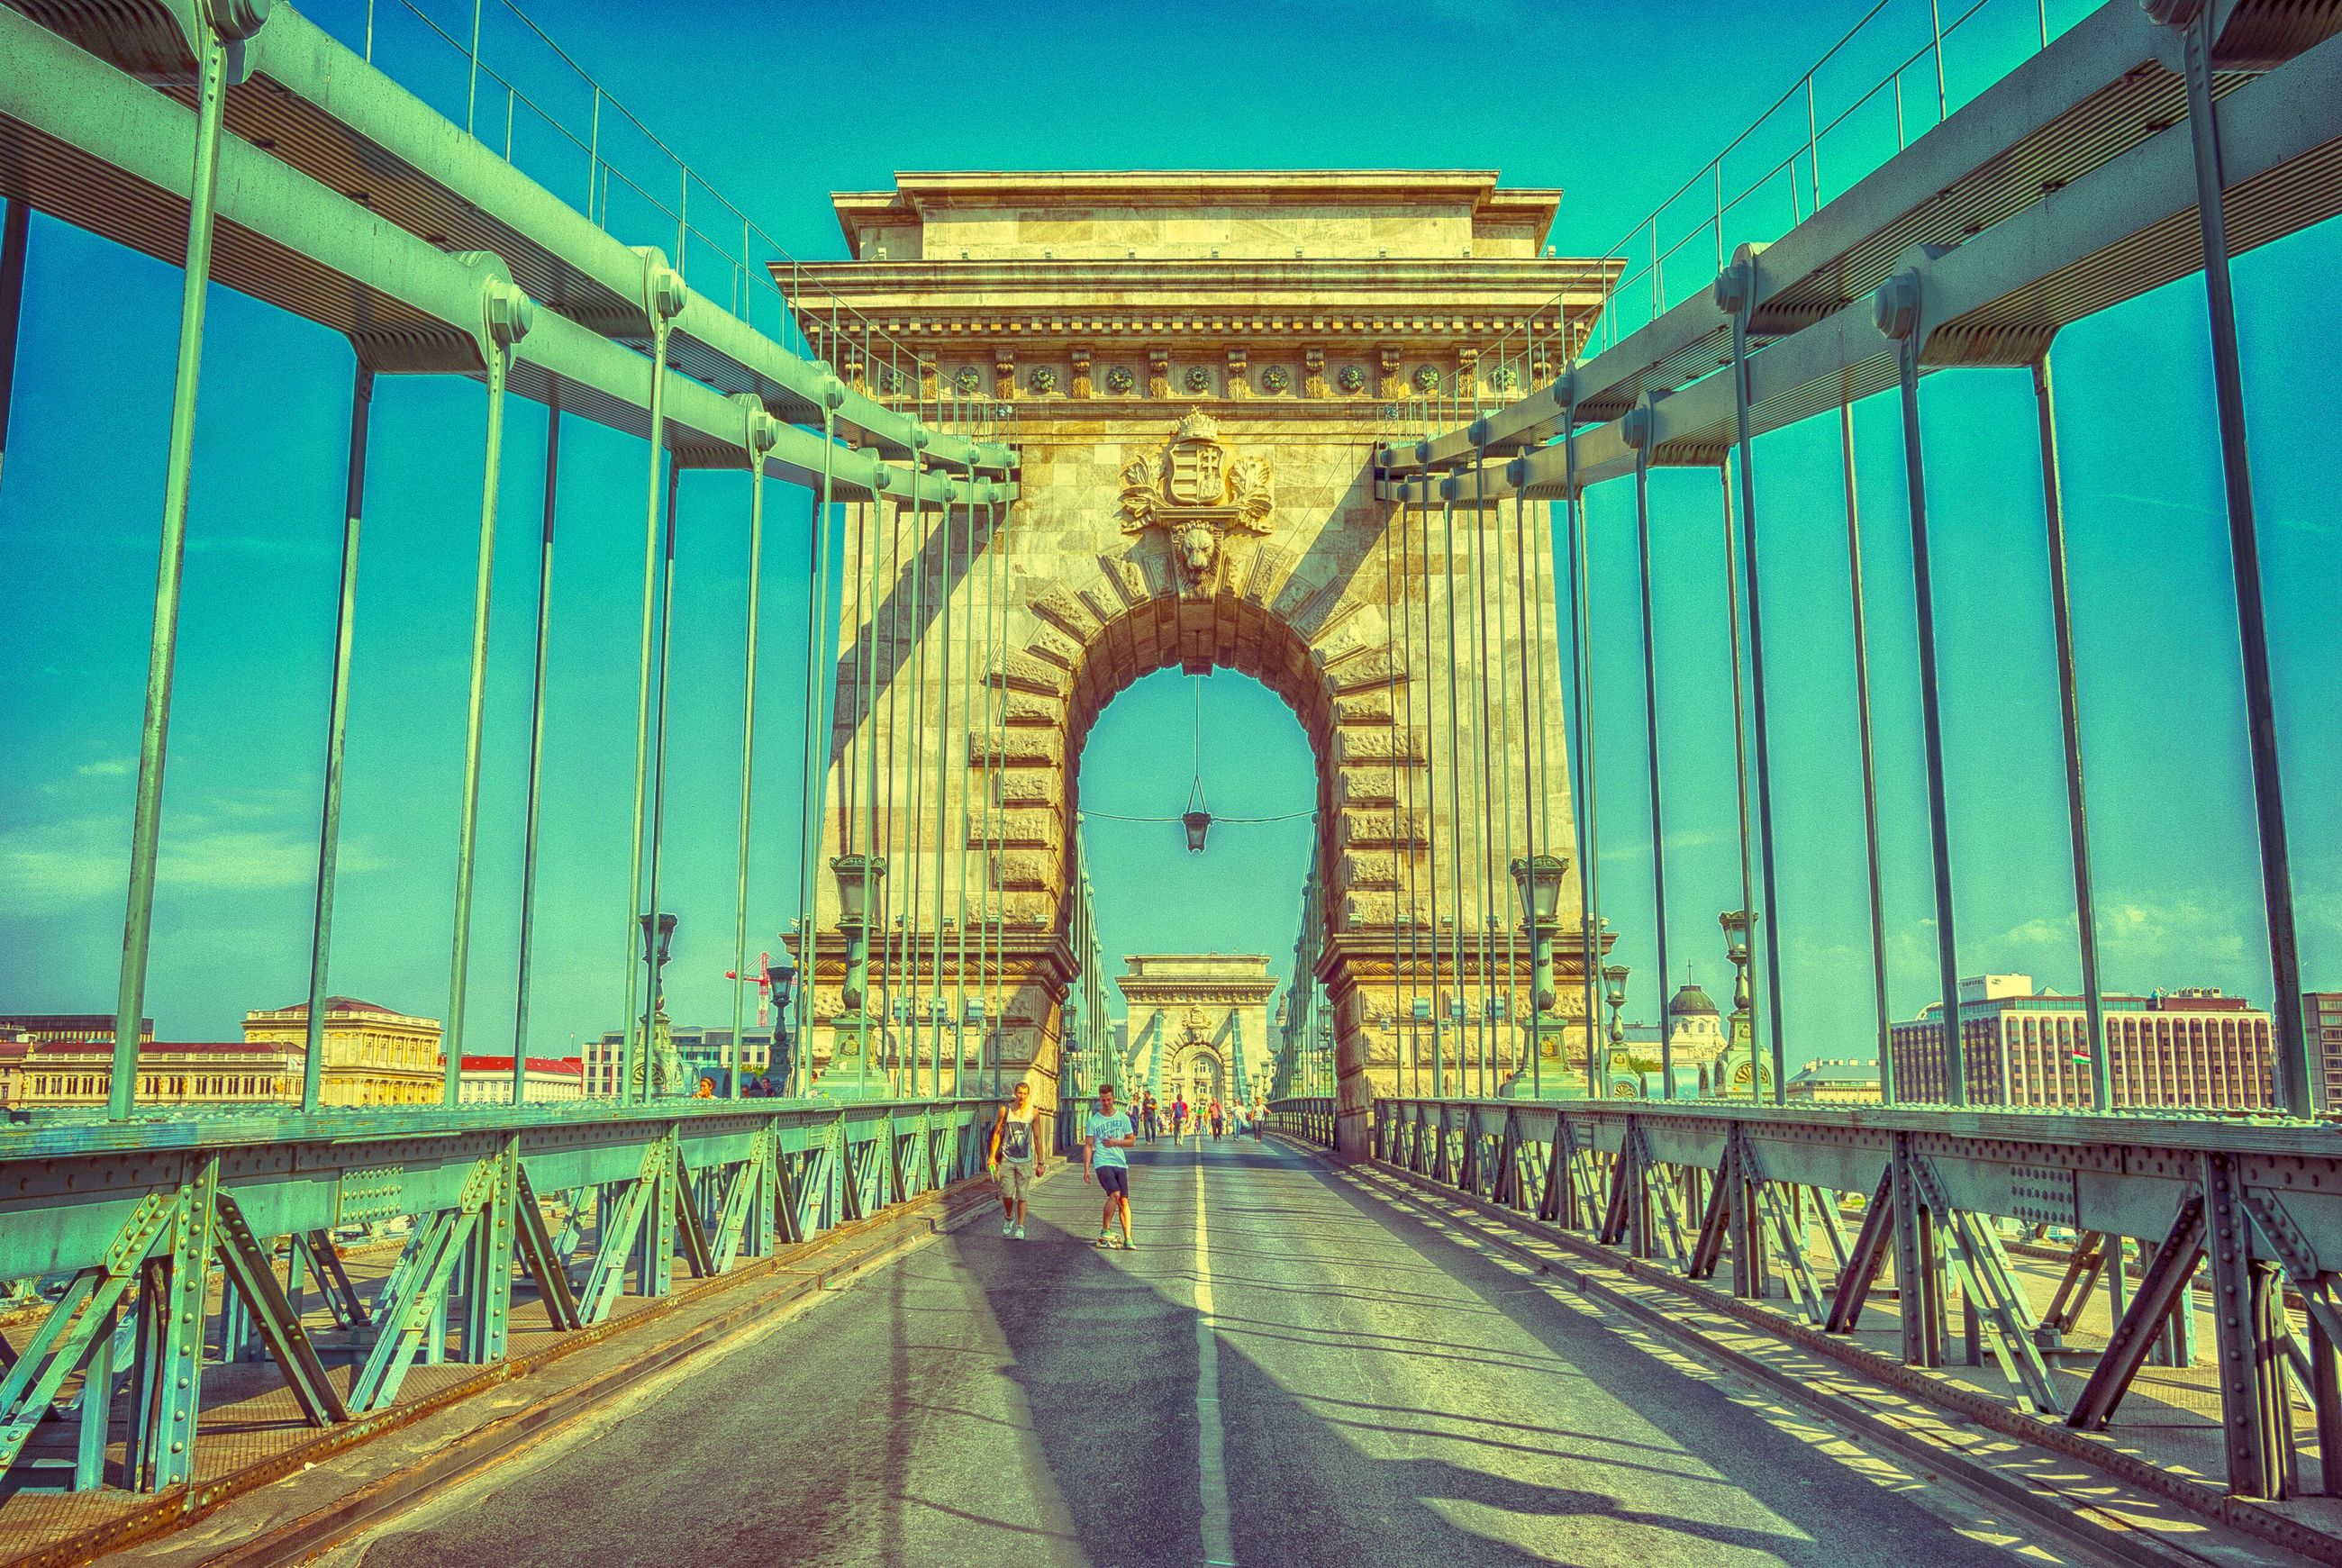 architecture, built structure, tourism, travel destinations, famous place, suspension bridge, connection, blue, travel, bridge - man made structure, engineering, international landmark, vacations, arch, the way forward, water, history, sky, outdoors, day, sea, the past, city life, architectural column, national landmark, architectural feature, scenics